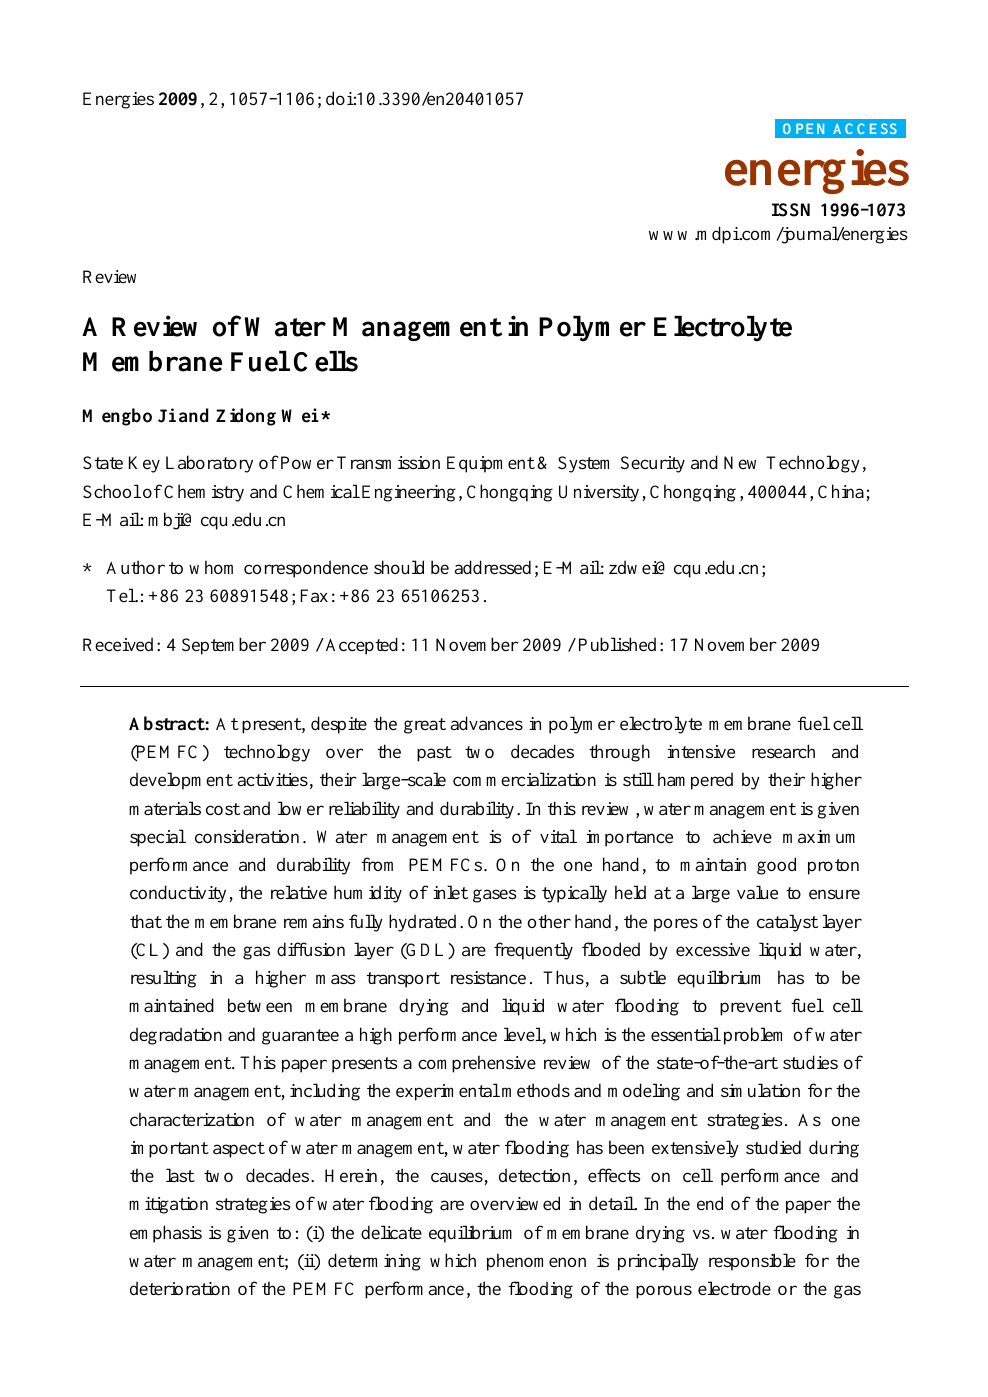 A Review of Water Management in Polymer Electrolyte Membrane